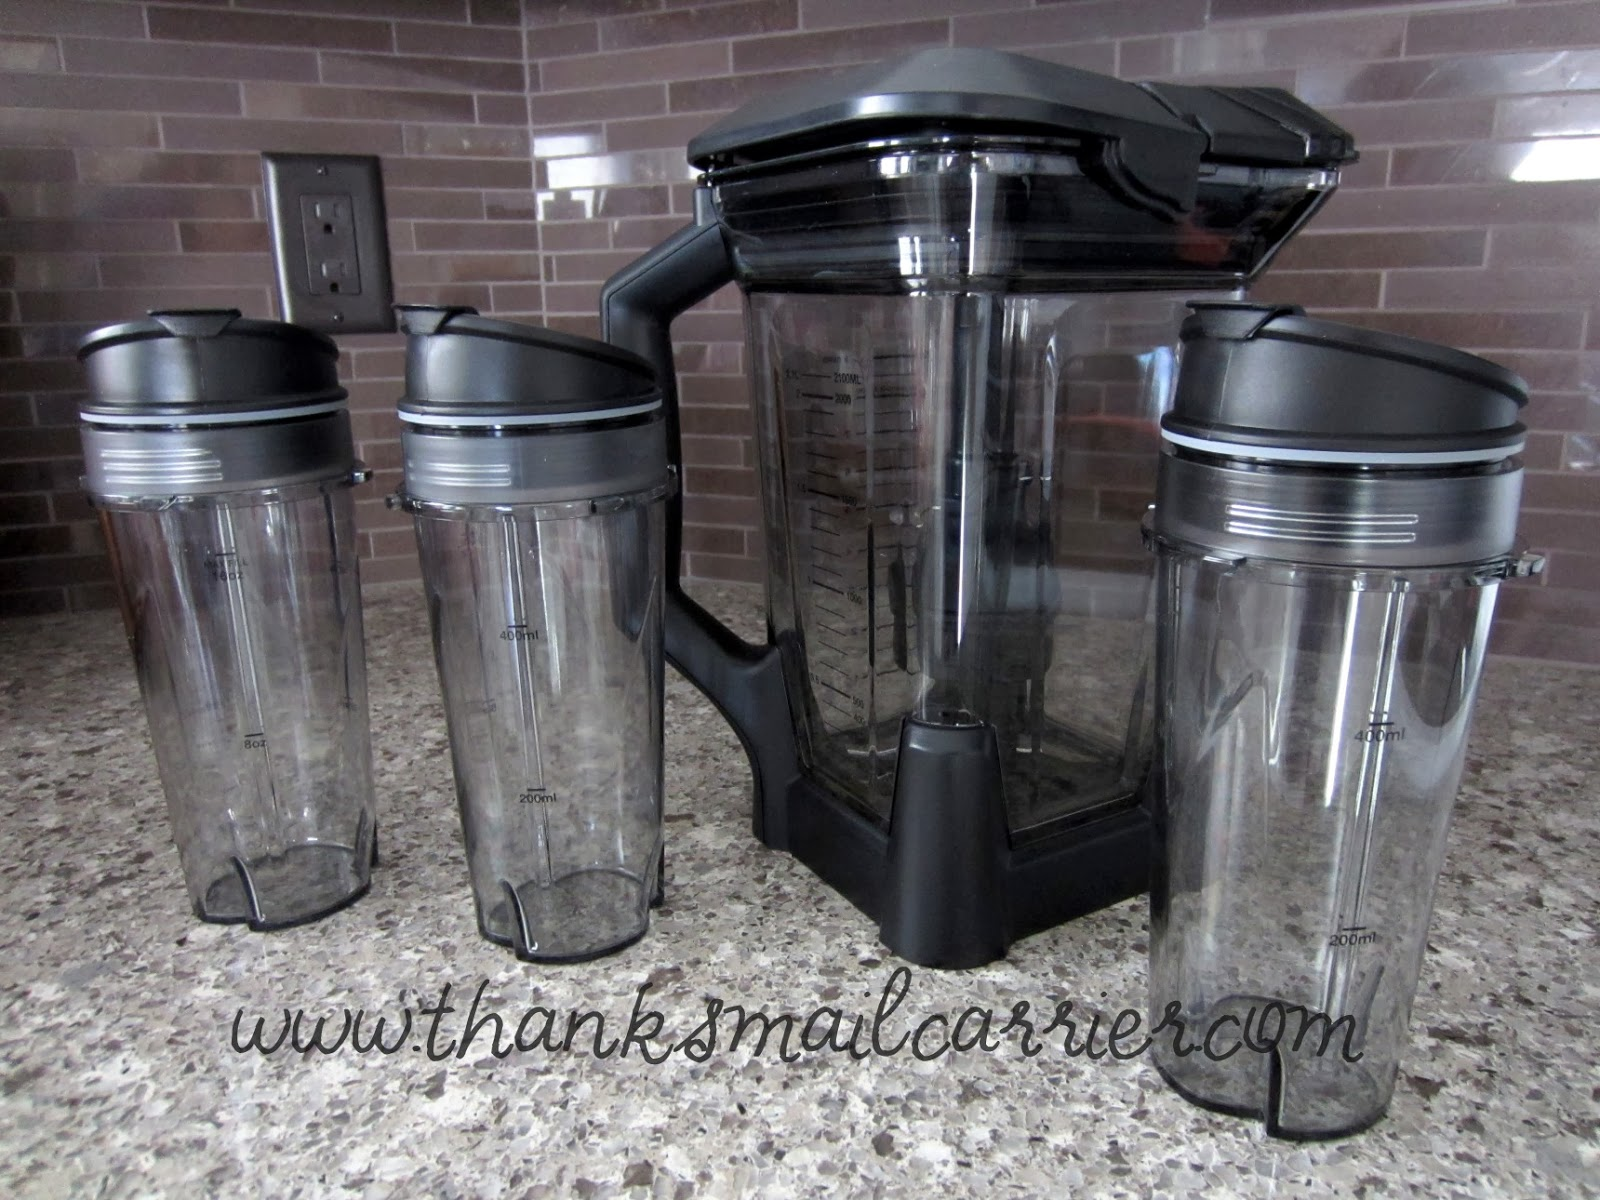 Ninja Ultima blender cups